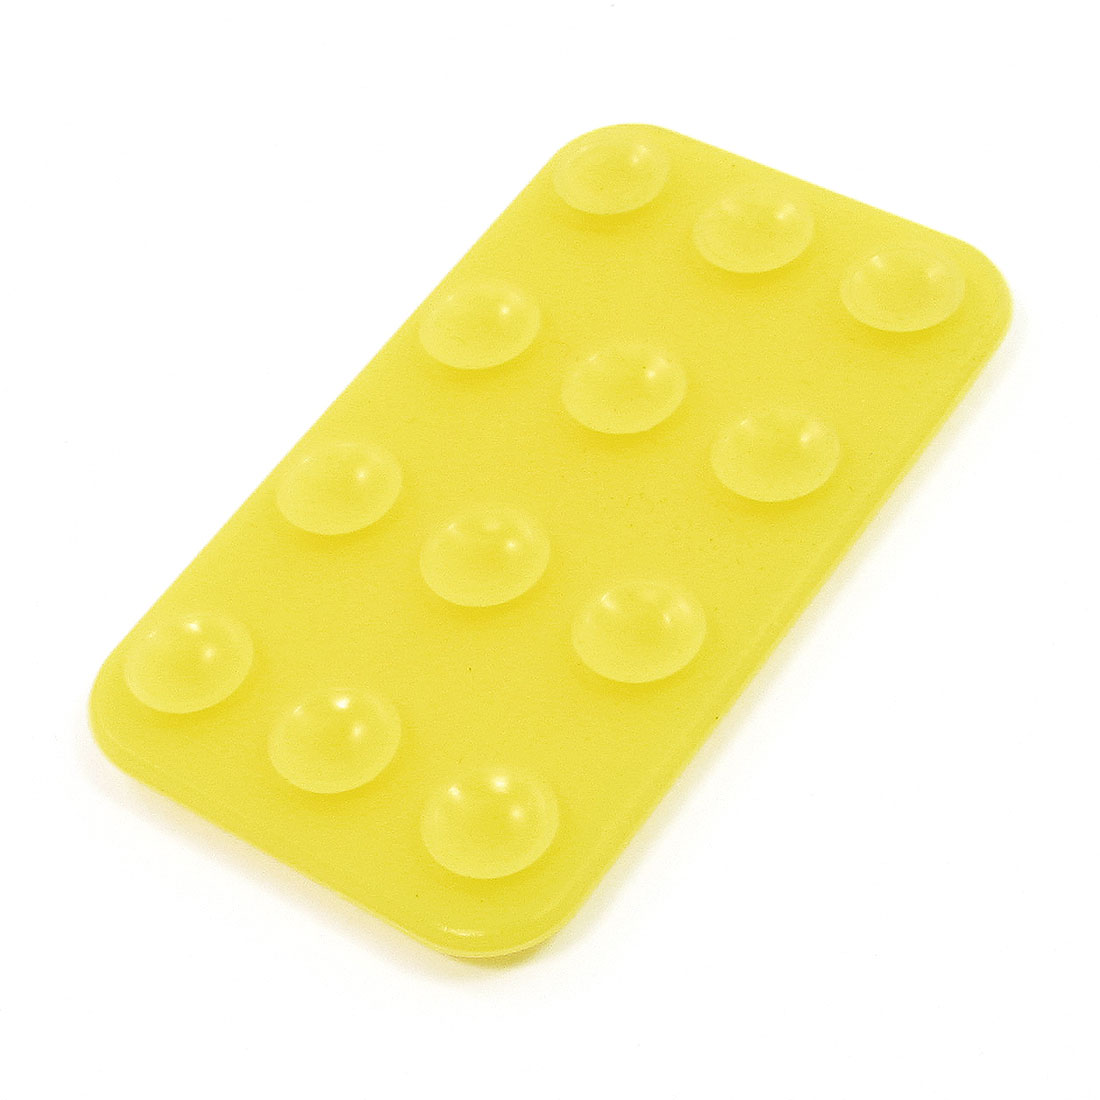 Yellow Silicone Rectangular Shaped Double Side Suction Cup for Mobile Phone